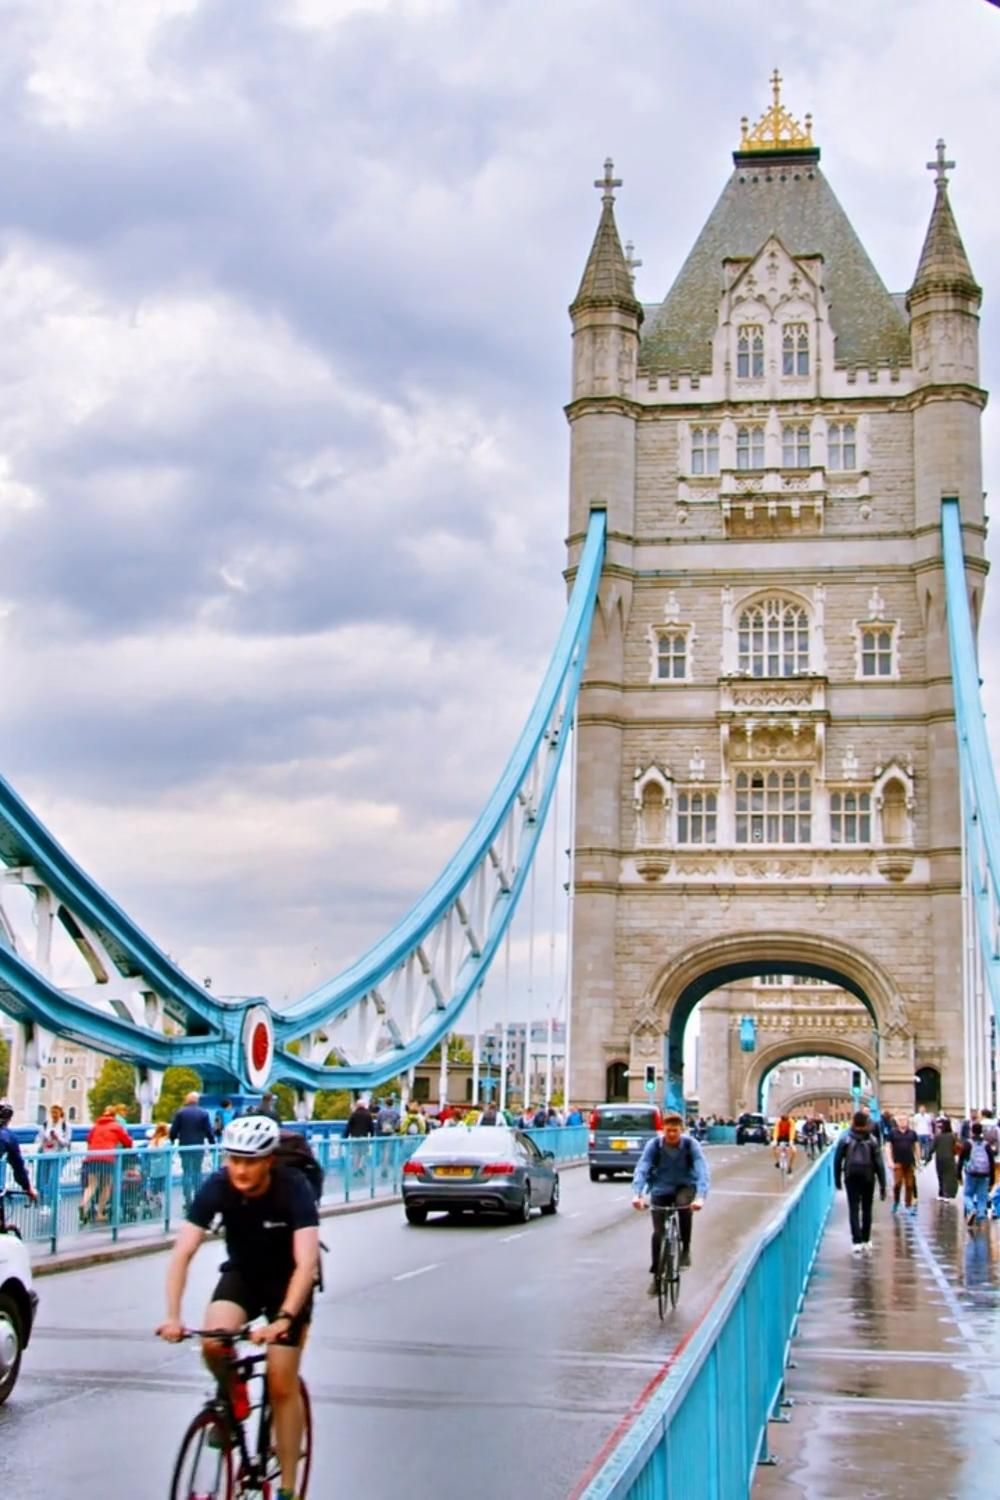 London Travel Guide - Tips On Must-Sees And Thing To Do - #LondonGuide | London Must See Bucket Lists | London Itinerary First Time | London Places To Visit | London Places To Stay | London Hotels Affordable | London Hotel View | London Tower Bridge Photography | Tower Bridge London Instagram Captions